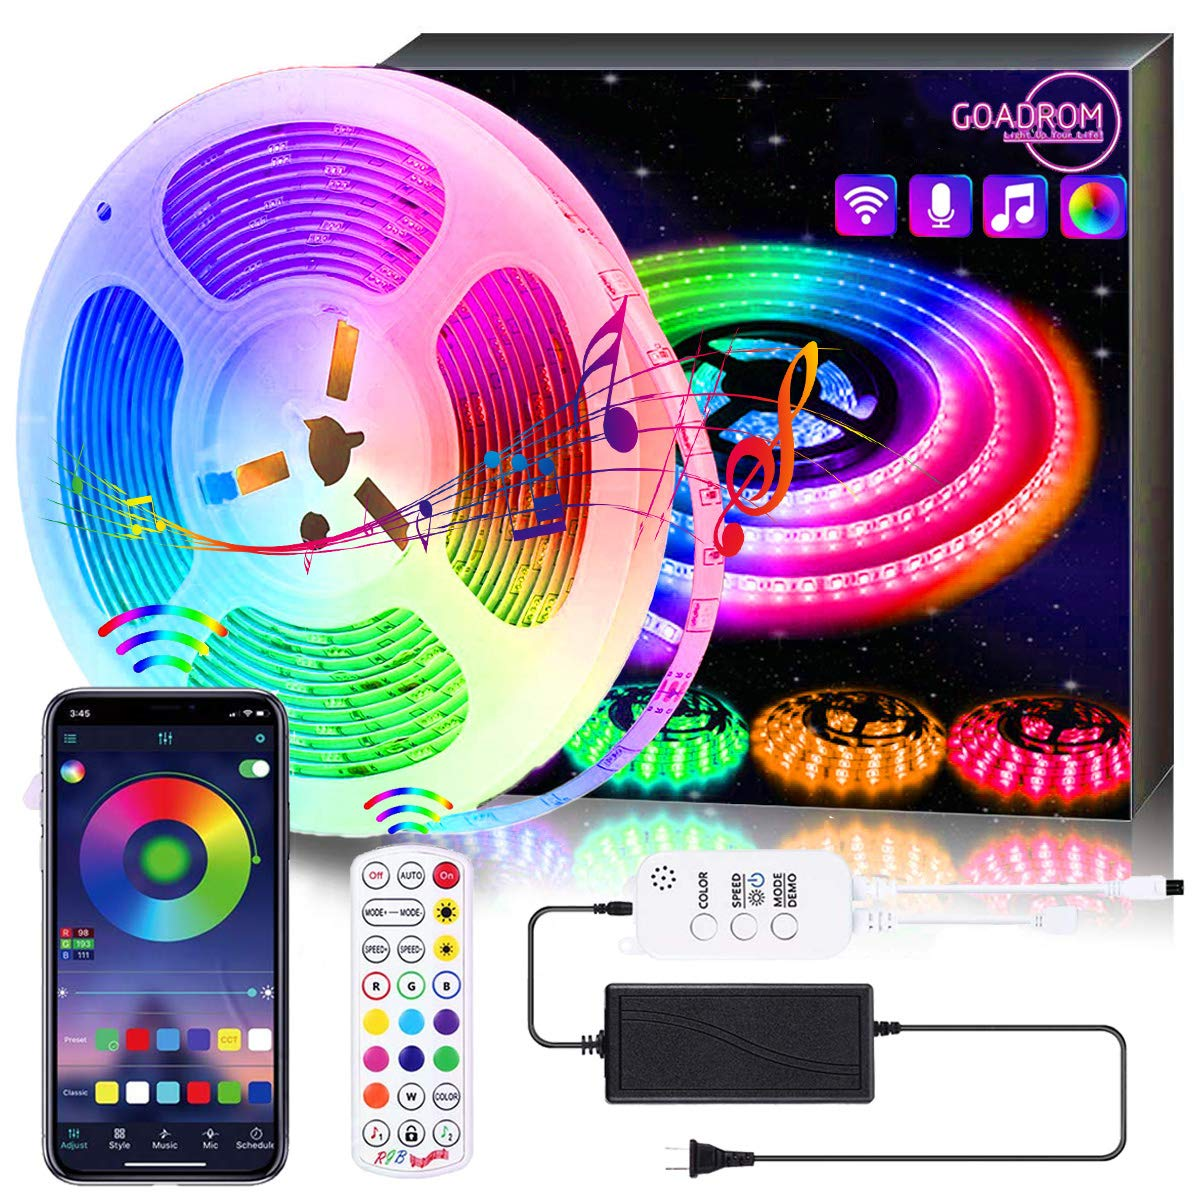 LED Strip Lights, GOADROM 16.4FT Tape Light 5050 RGB Light Strips Work with APP Non-Waterproof Music Sync Color Changing+Bluetooth Controller+24Key Remote Control Decoration for Home, Kitchen, Party